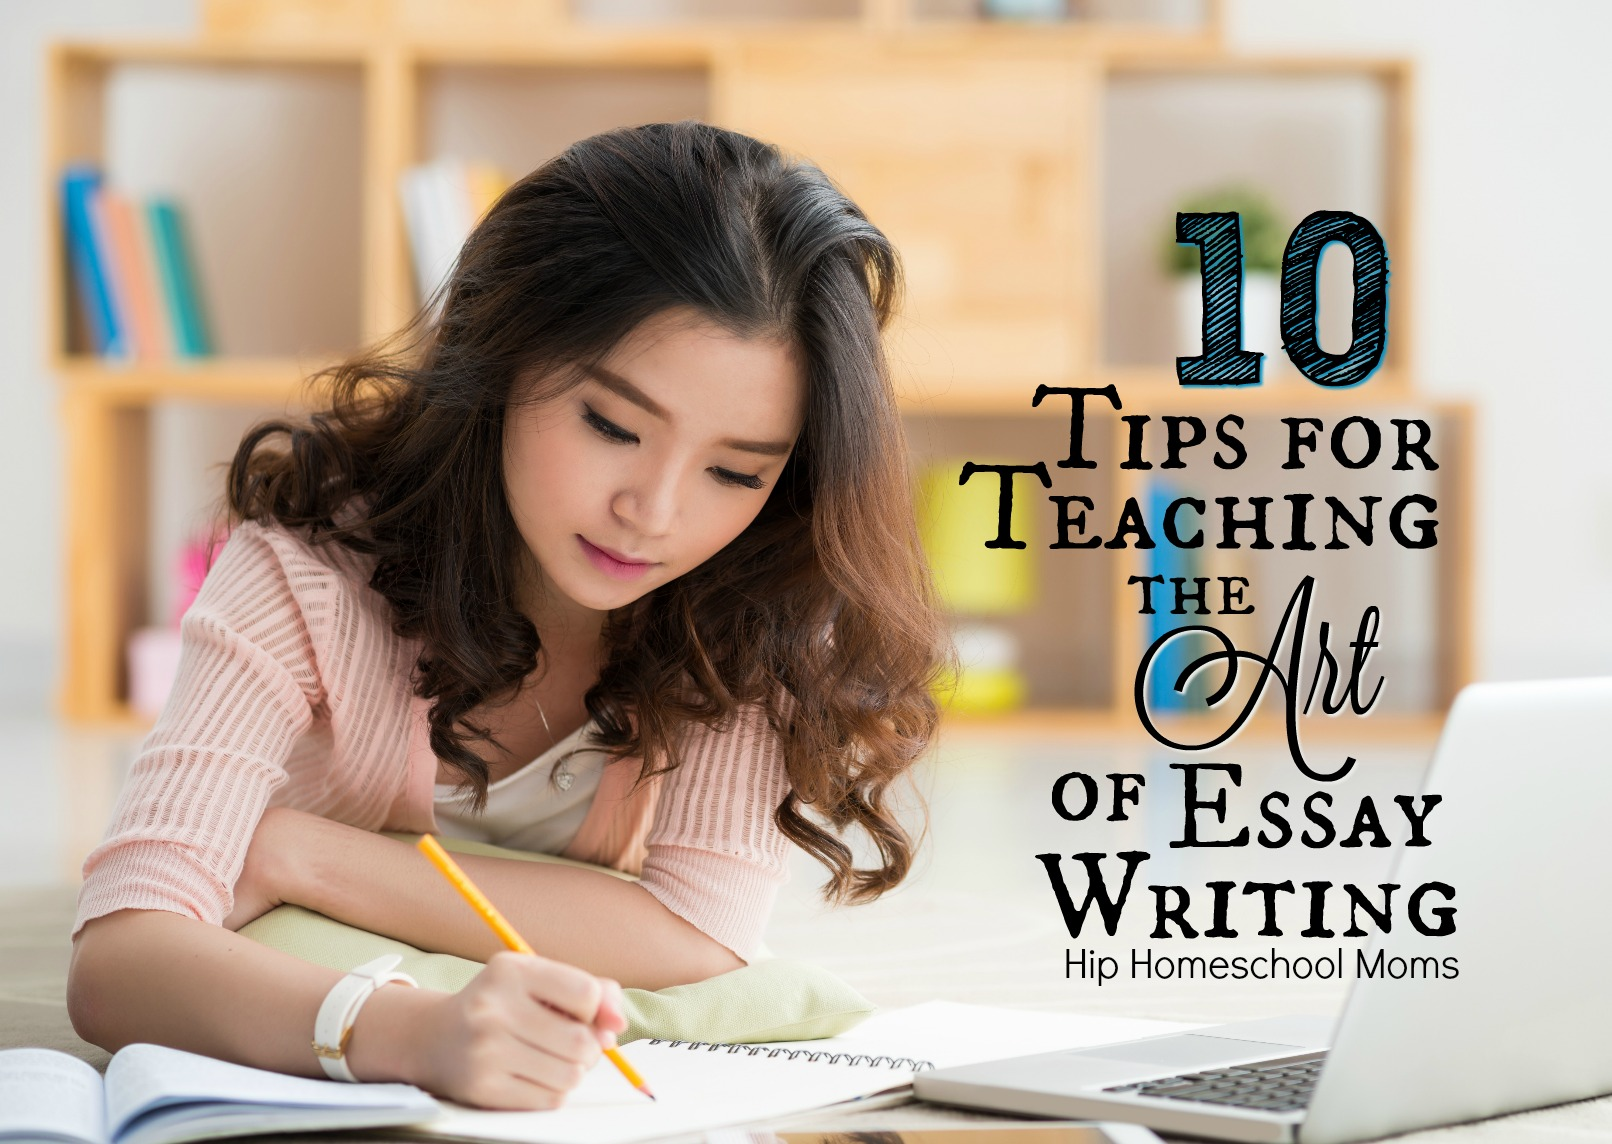 10 Tips for Teaching the Art of Essay Writing